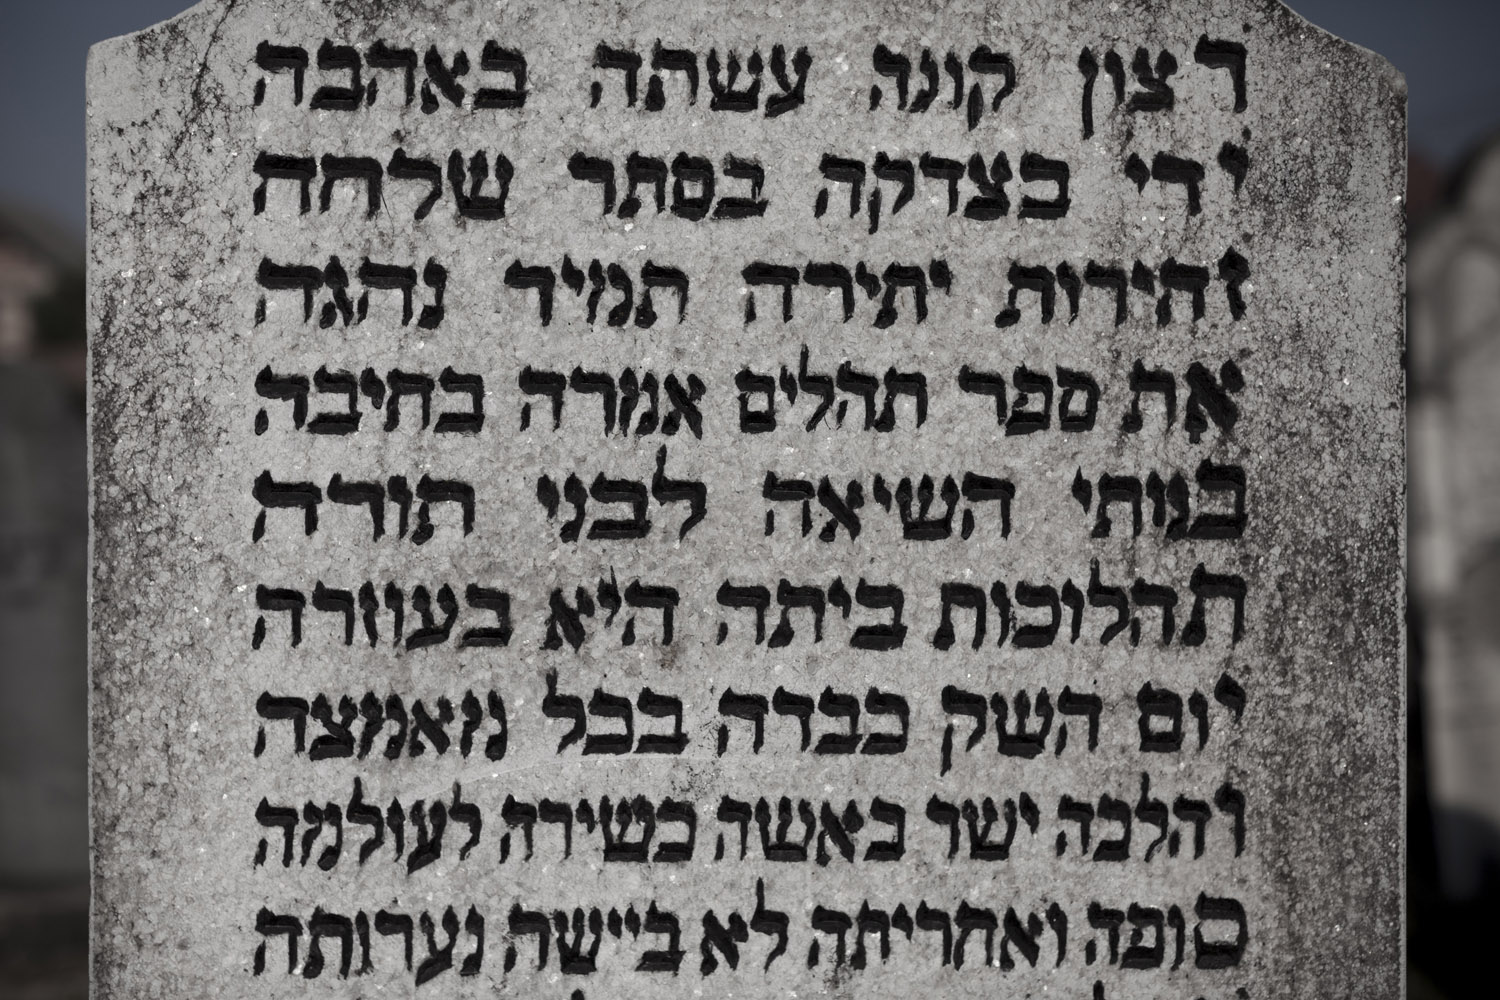 "In the Jewish cemetery of Khust: ""She always acted with care, and read the book of Psalms with love. She married her daughters to students of the Torah, and always lend a helping hand in the house. She honoured Tisha b'Av with all her strength, and as a righteous woman went straight to the world beyond..."""